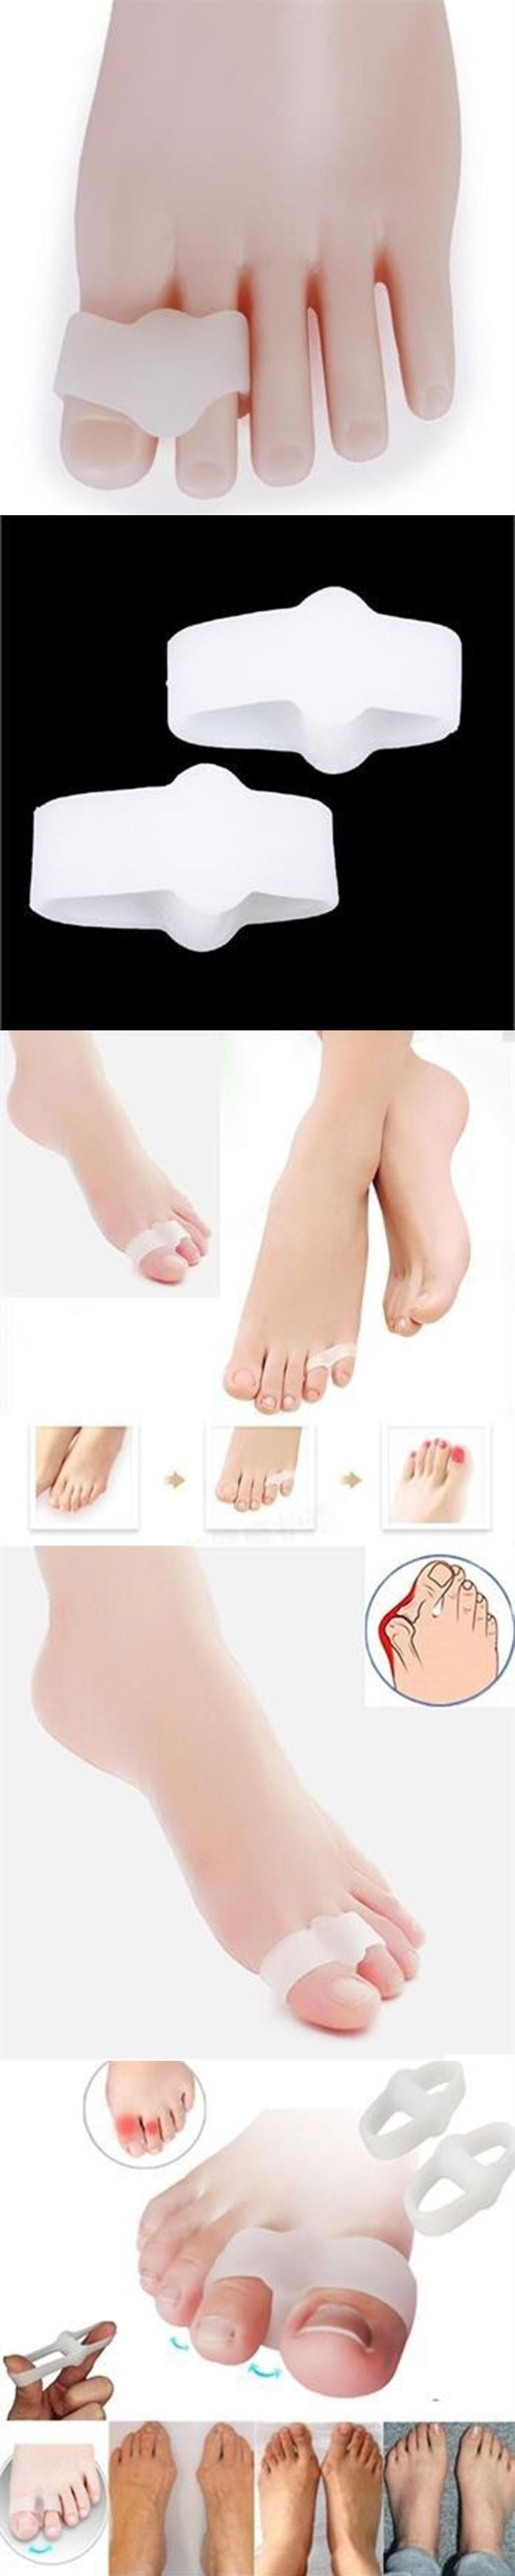 what causes bunions and how to get rid of them